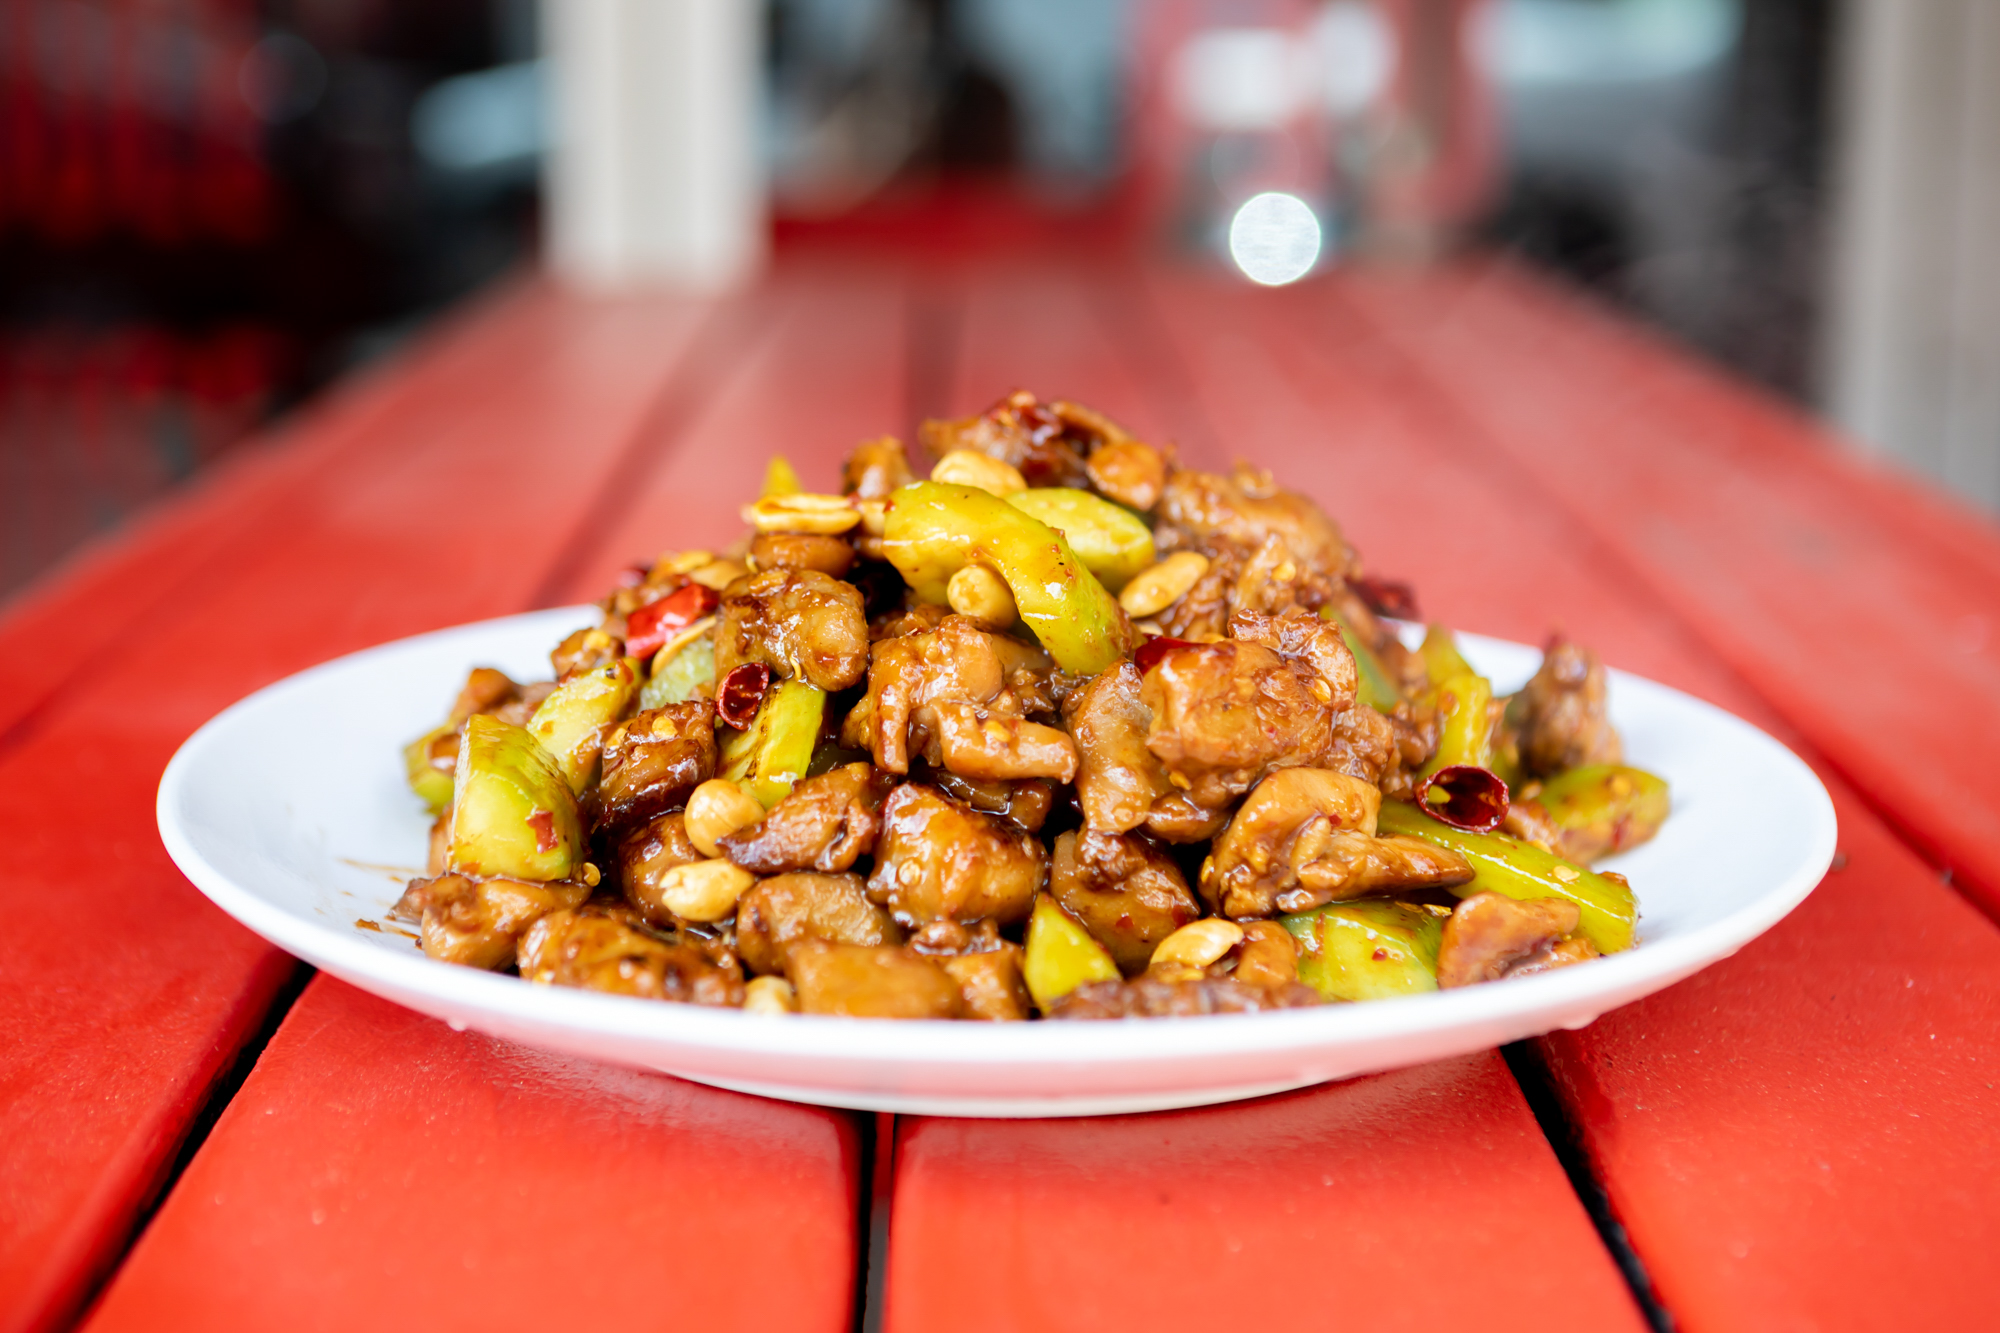 A plate of kung pao chicken on a red table